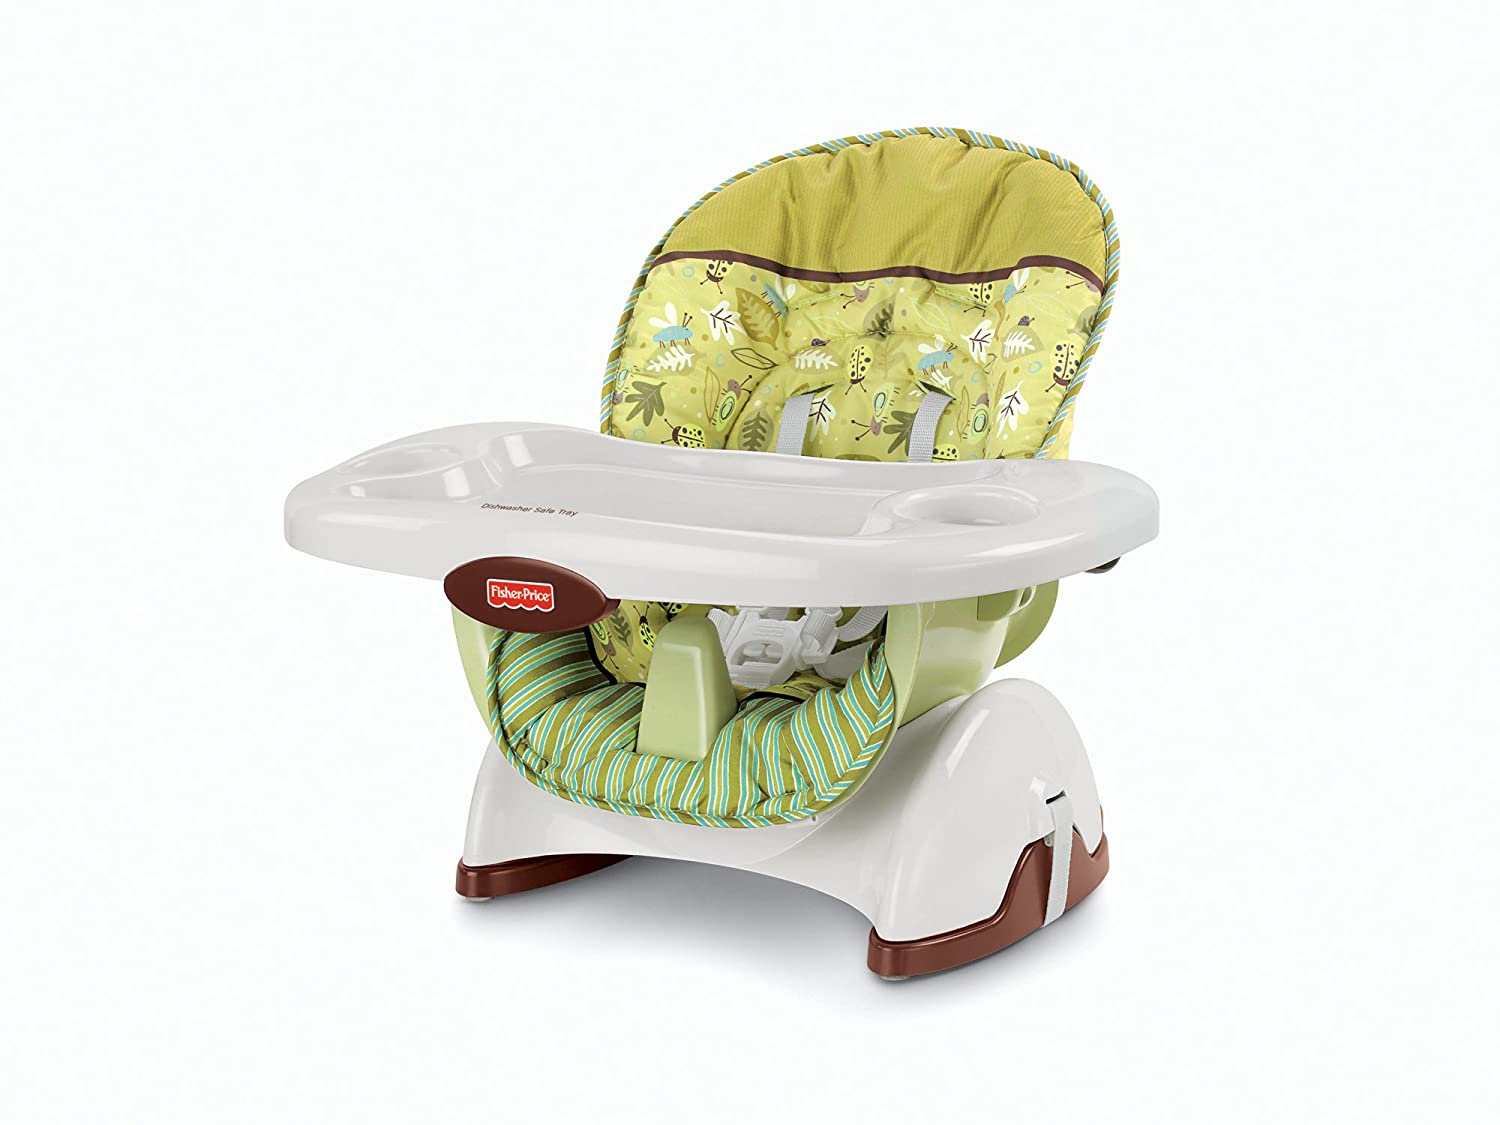 Delicieux Amazon.com : Fisher Price SpaceSaver High Chair, Scatterbug : Childrens  Highchairs : Baby